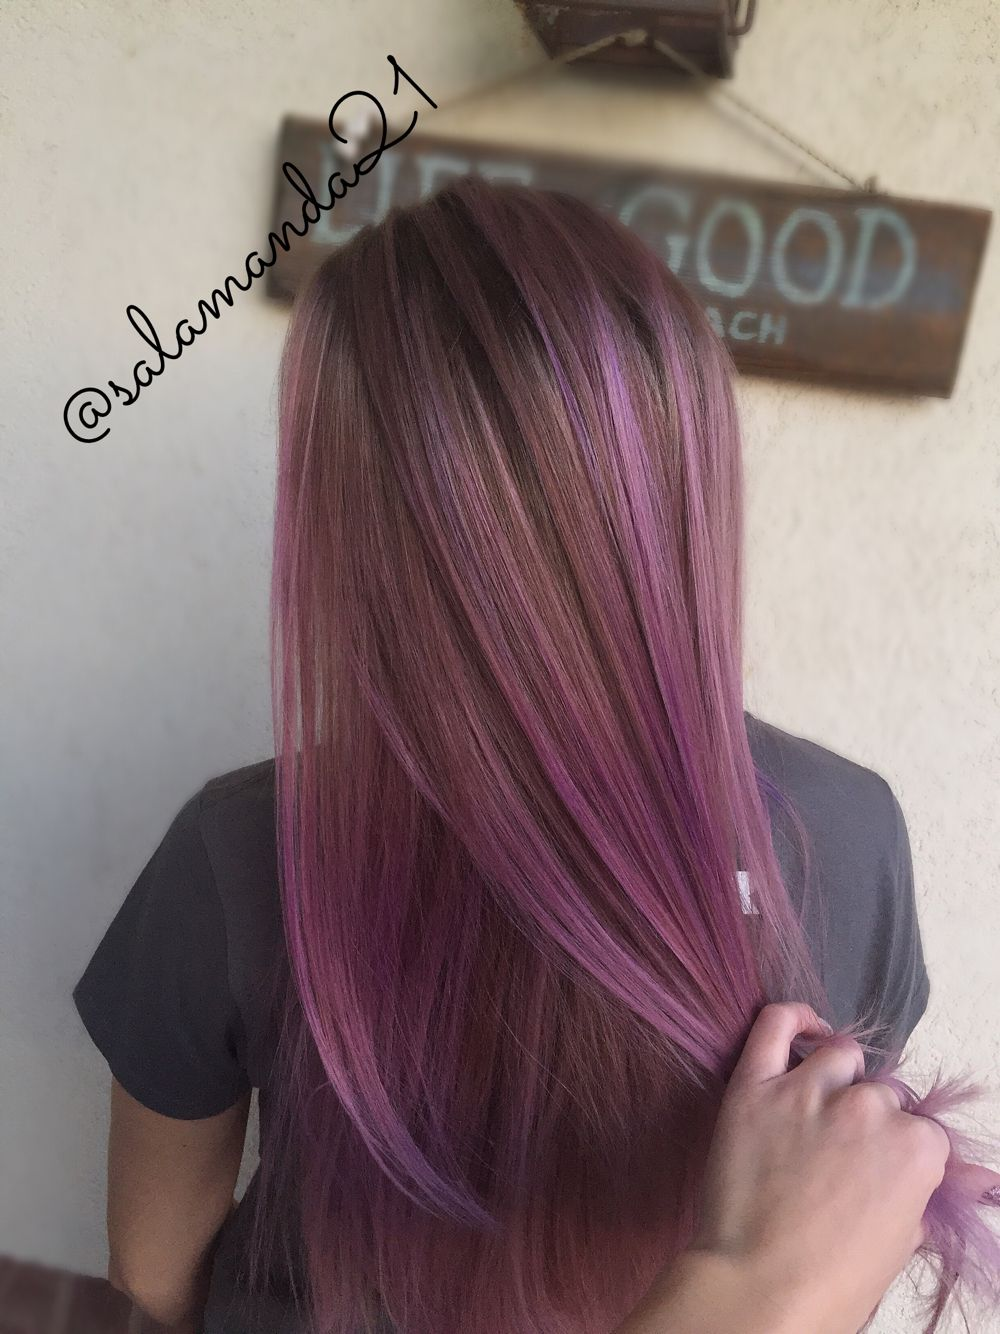 Picture of black and magenta balayage hair - Light Pastel Pink And Purple Balayage With Natural Brown Hair Done By Me Salamanda21